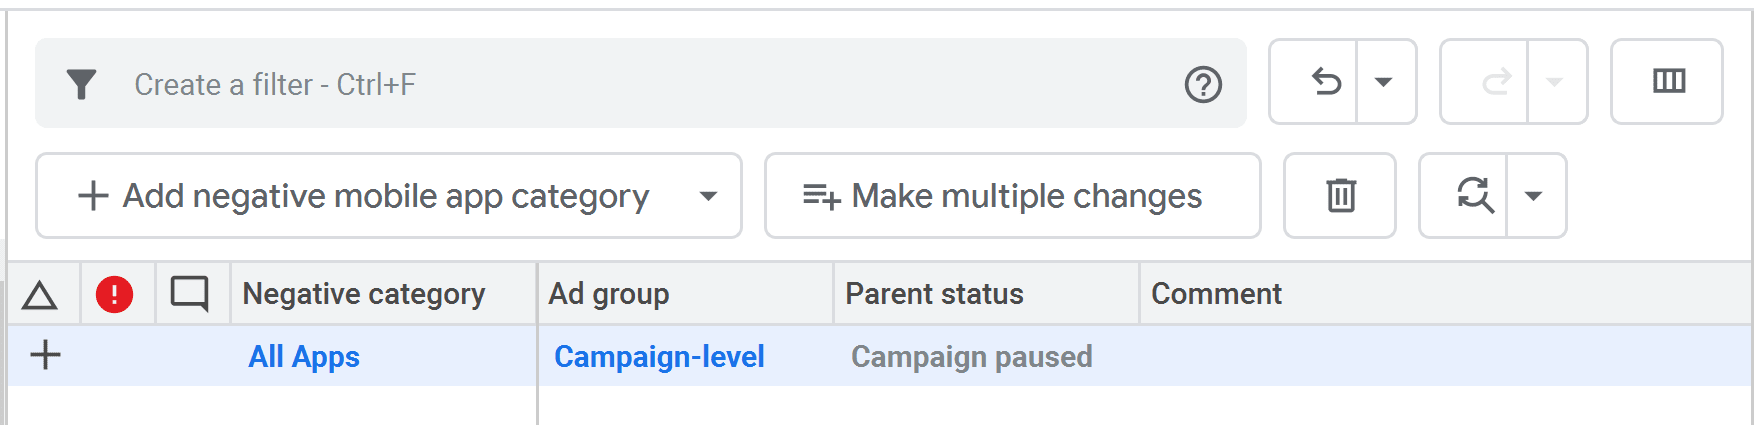 Google Ads Editor Exclusions Screen Shot